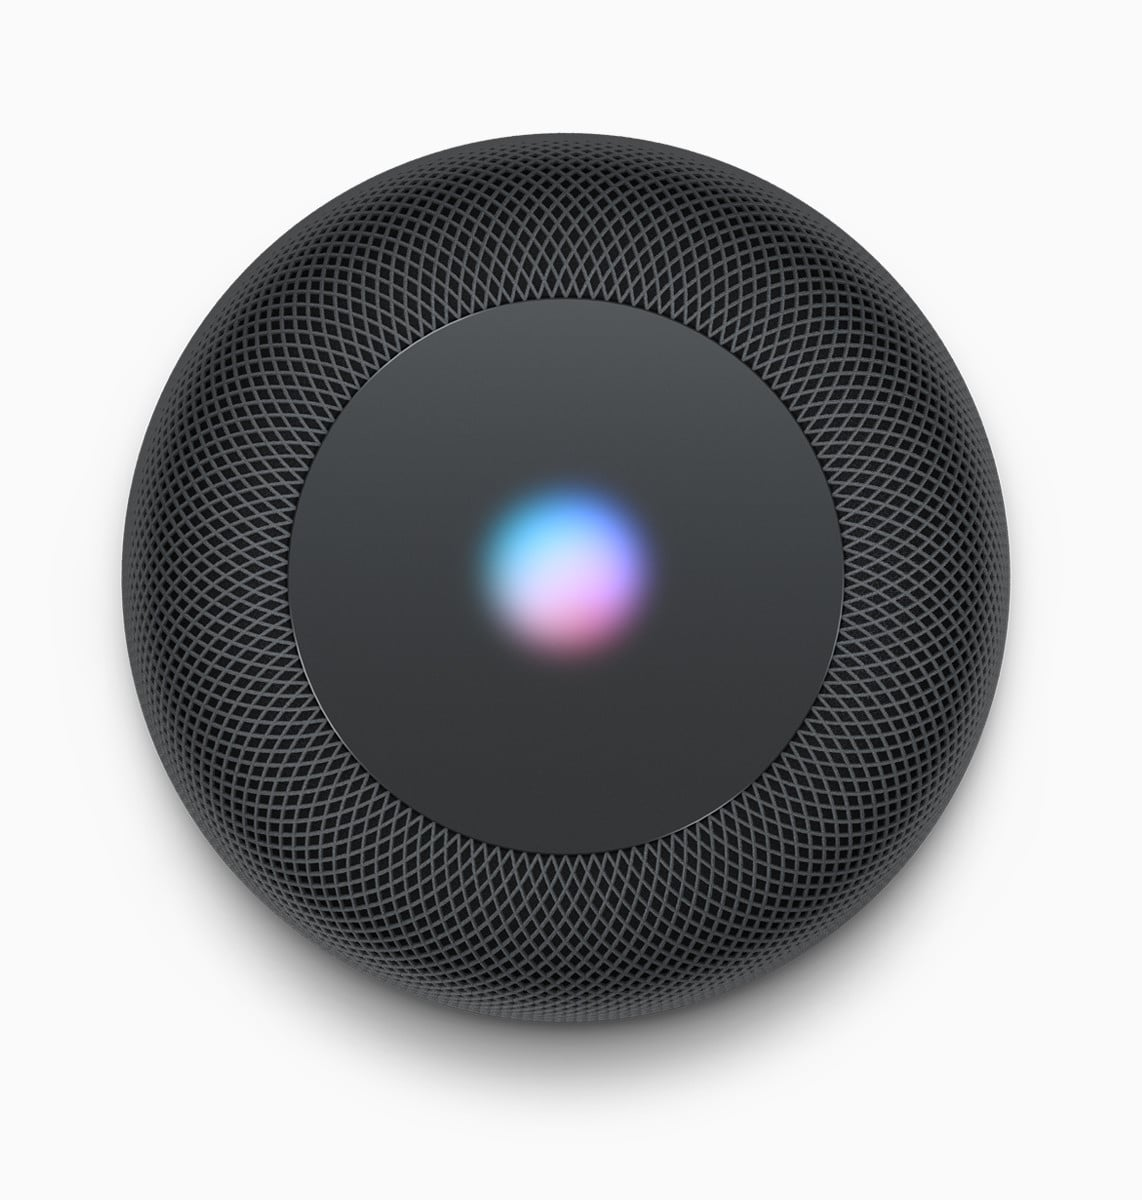 Apple Delays HomePod Speaker to